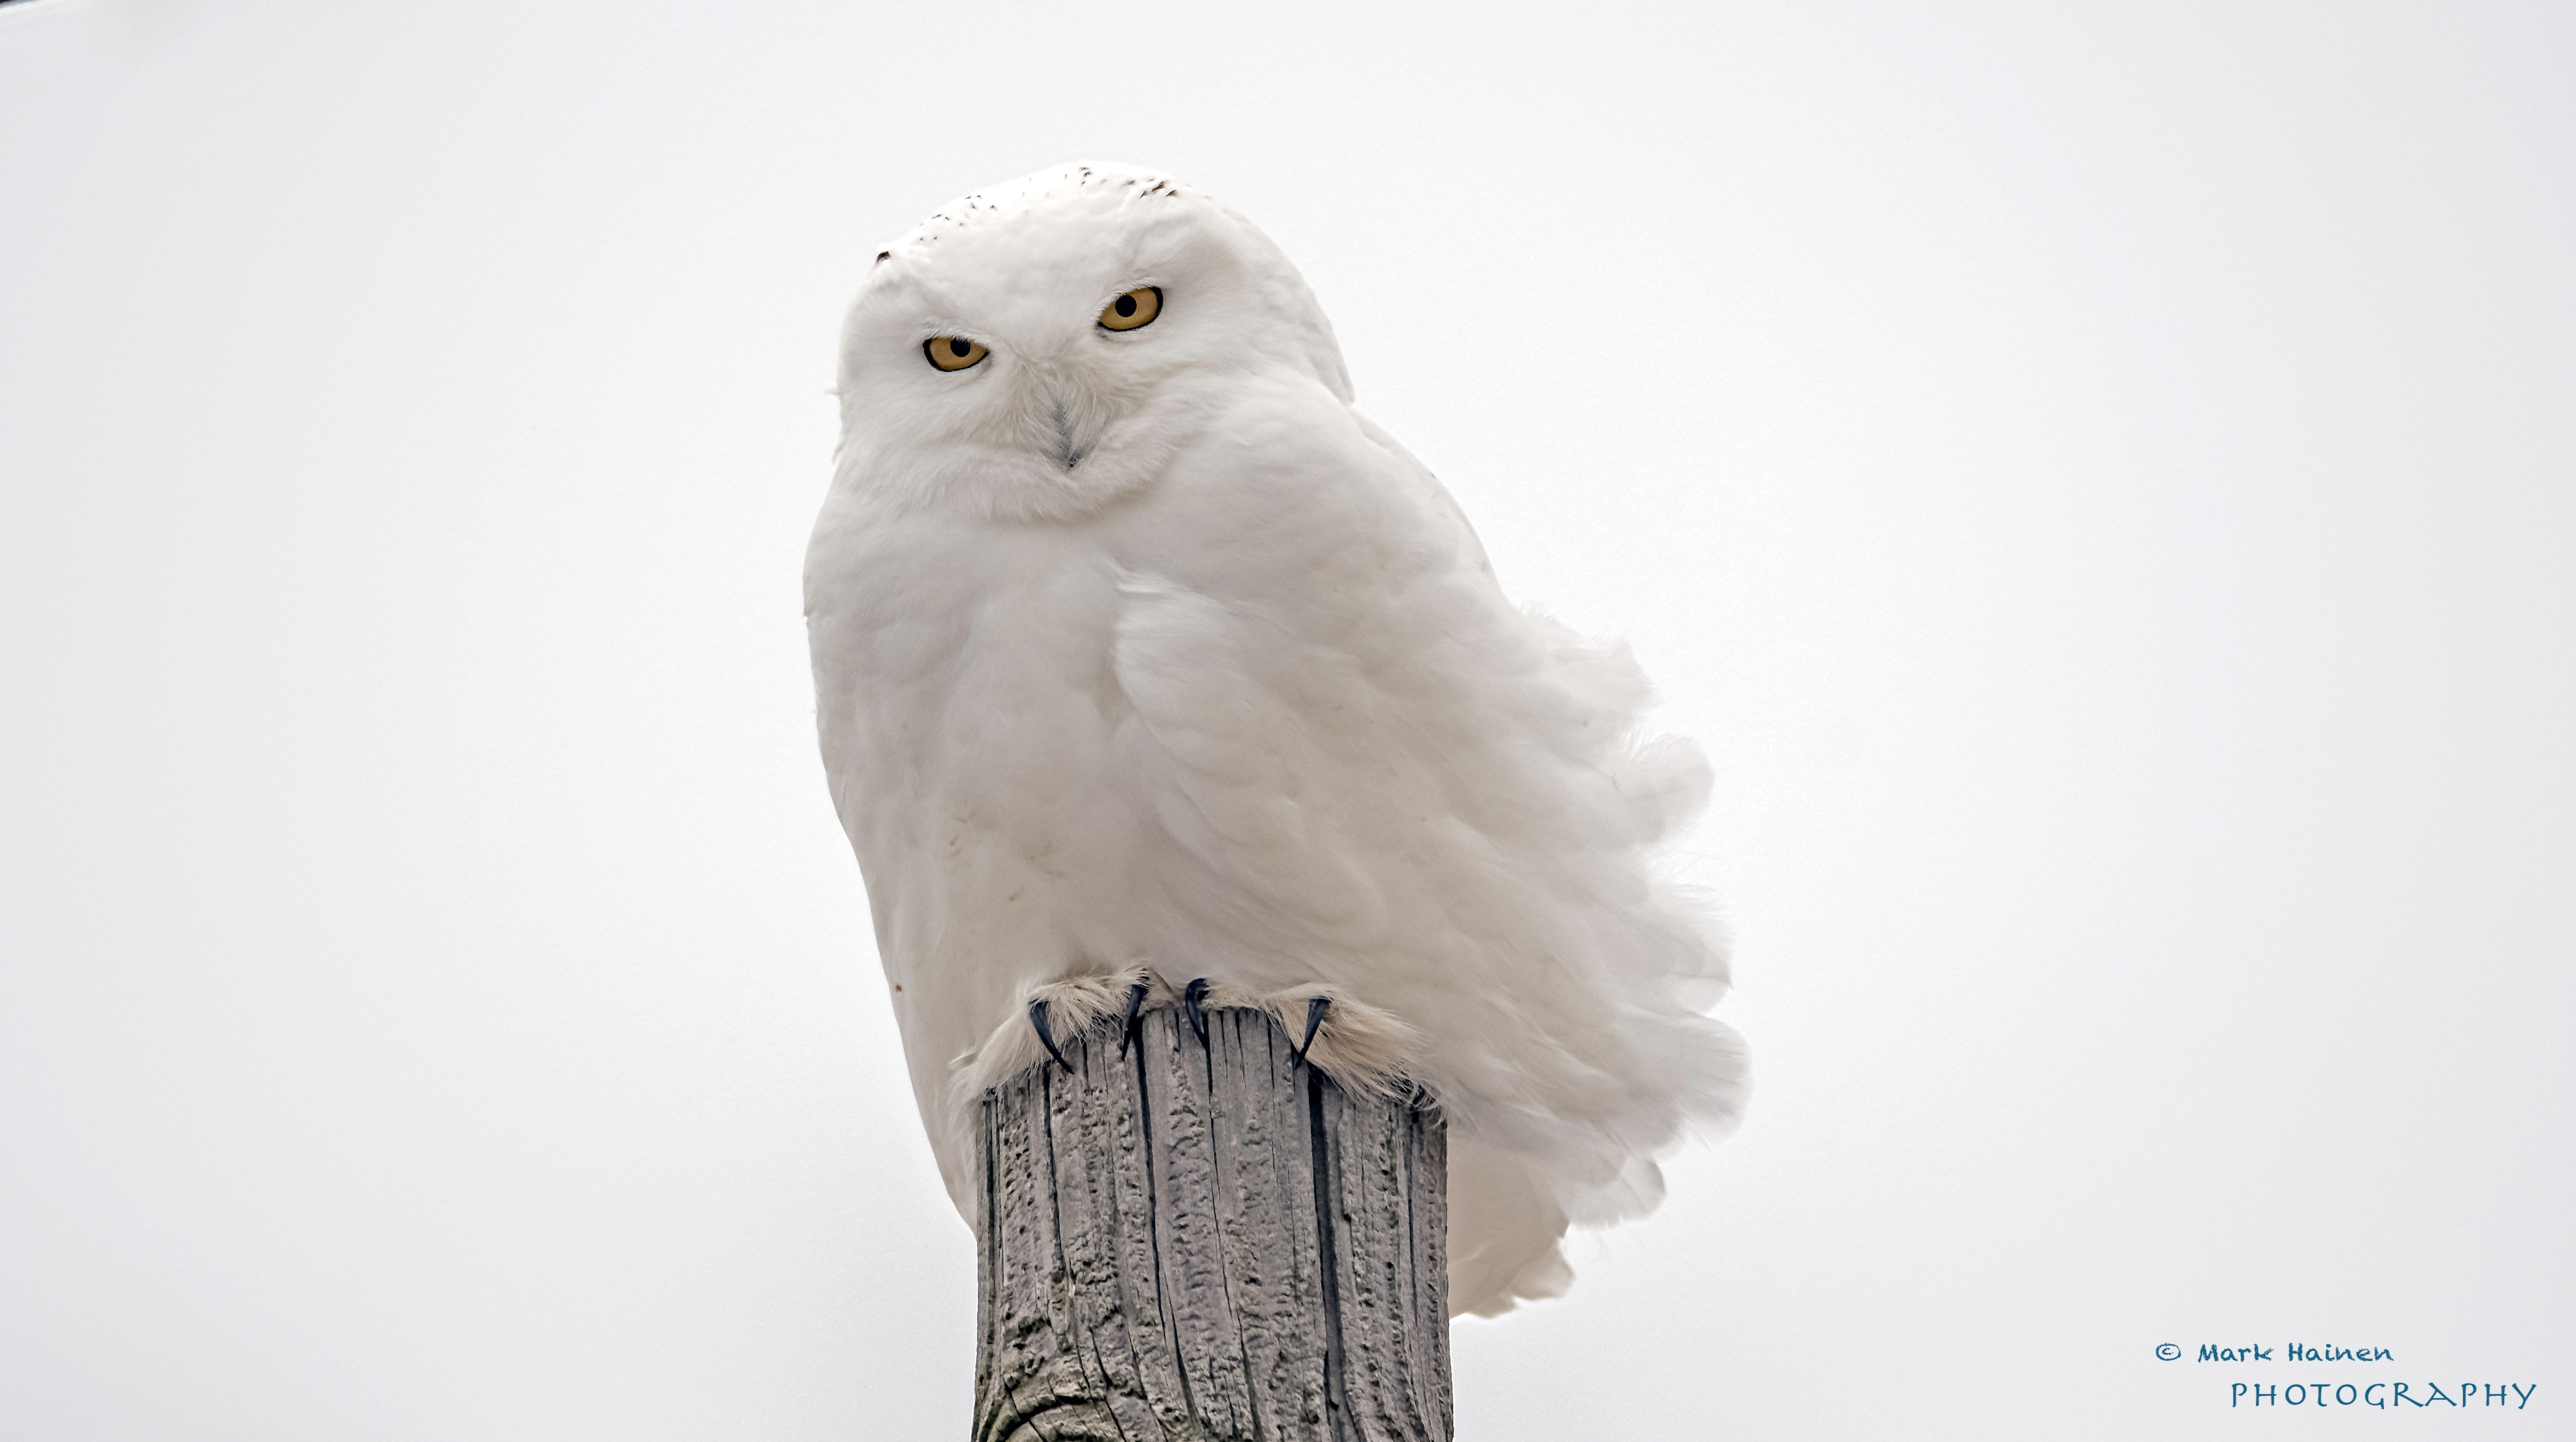 Its going to be a snowy owl winter biocorpaavc Choice Image